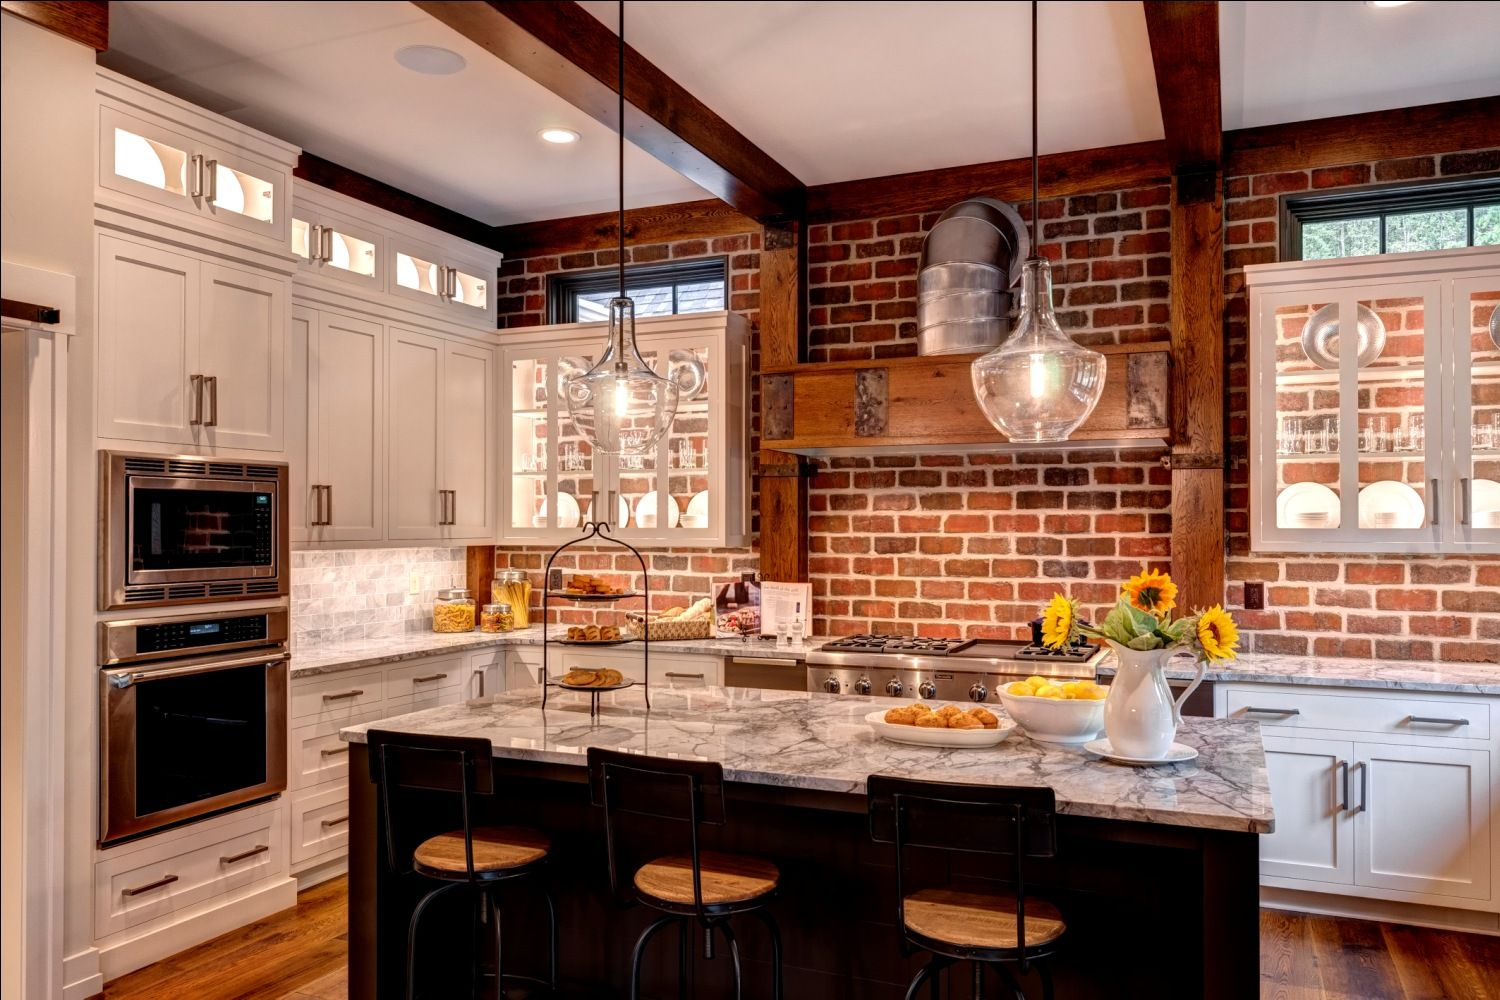 Street Of Dreams 2014 Gallery Farinelli Construction Inc Brick Wall Kitchen Exposed Brick Kitchen White Brick Wall Kitchen